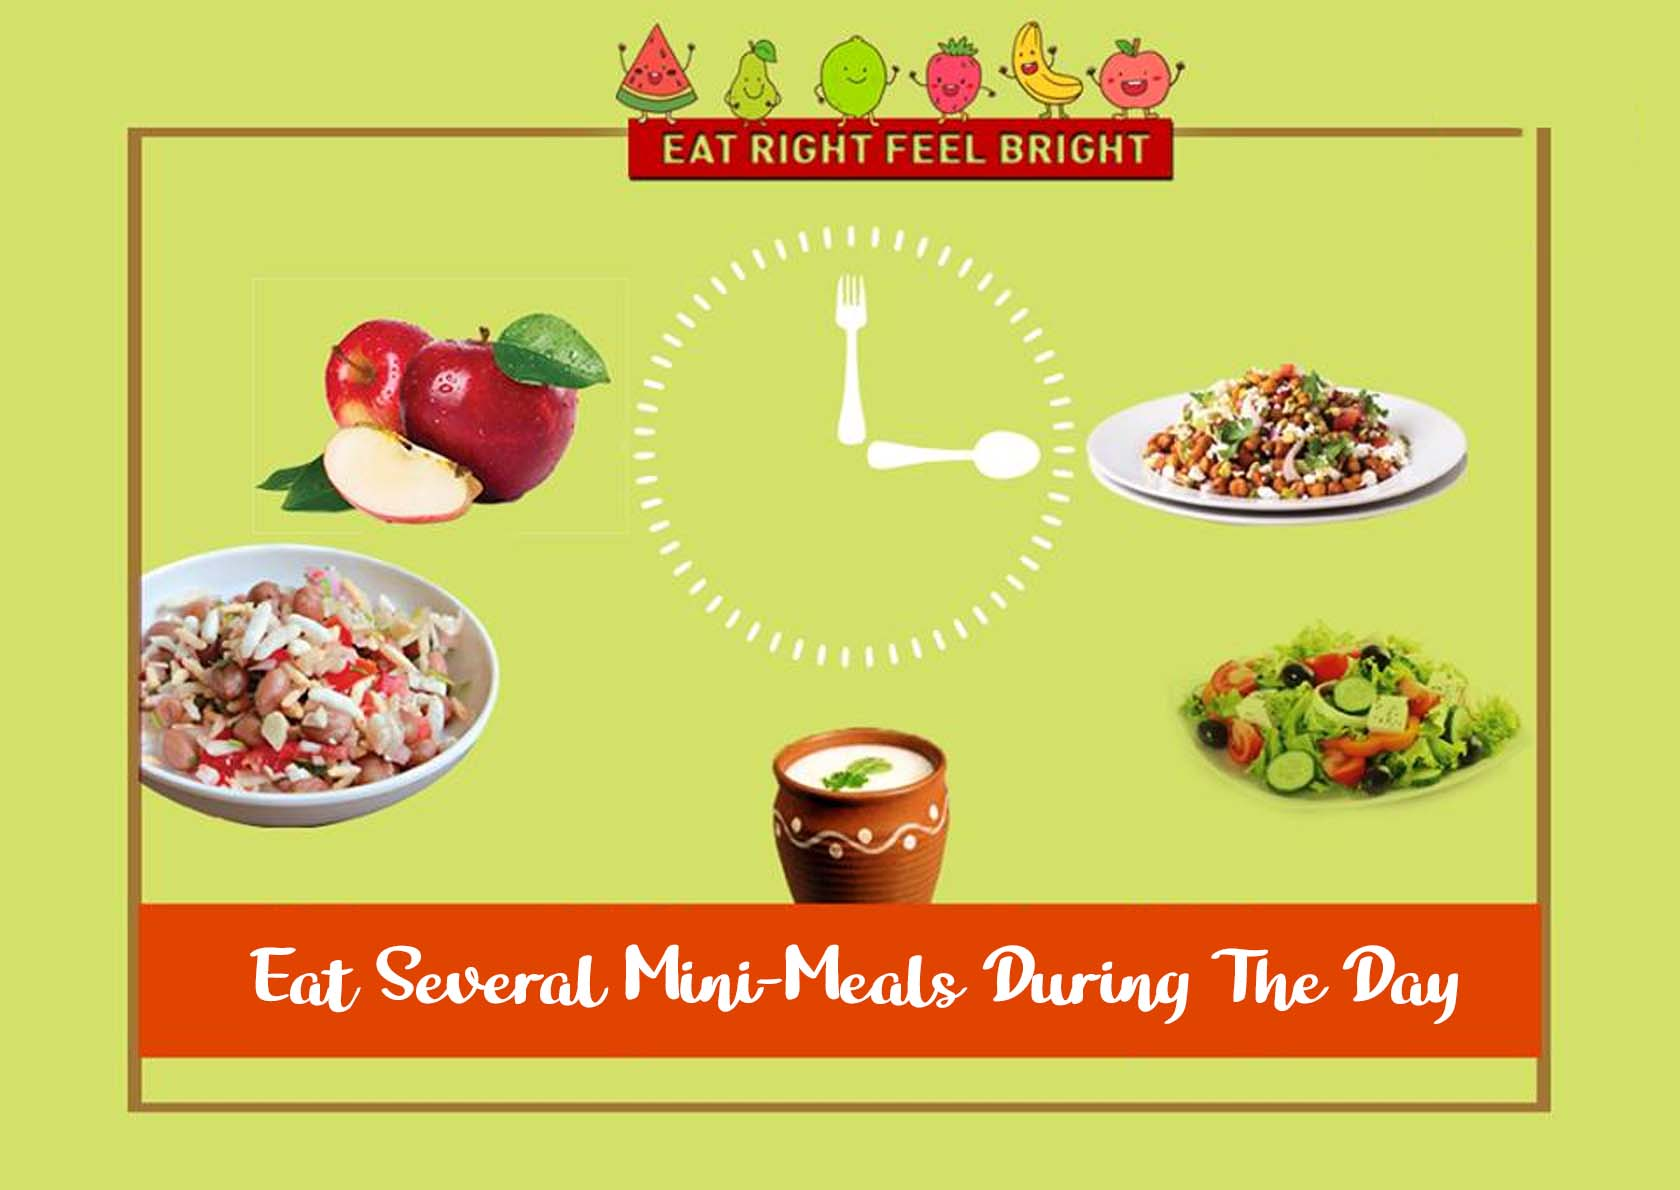 Eat Several Mini-Meals During The Day